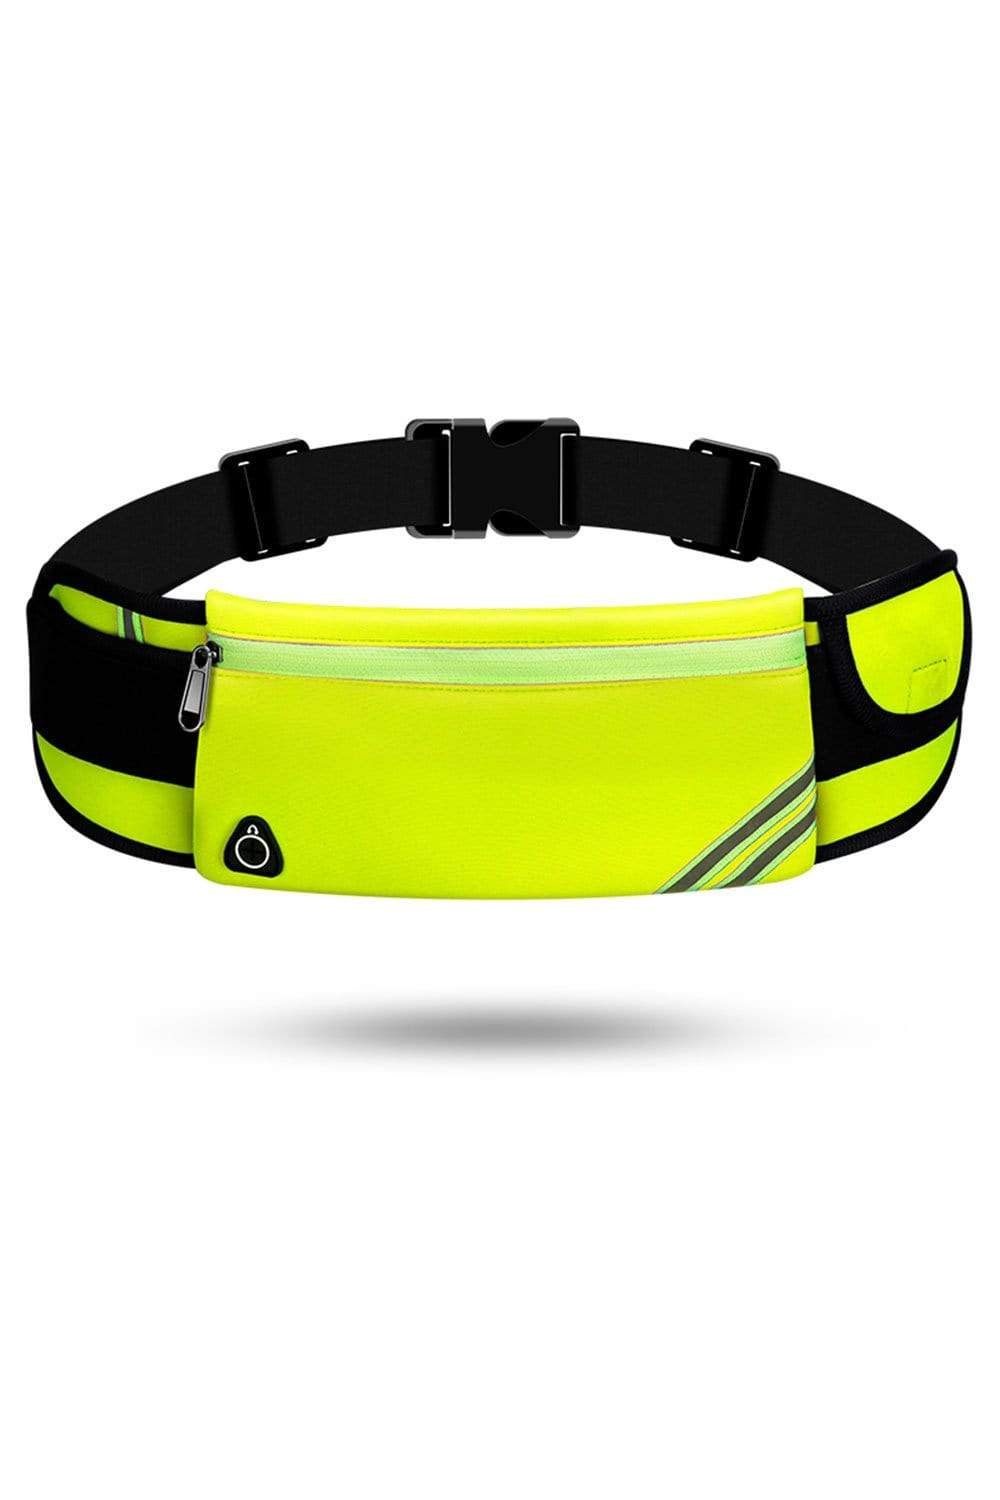 Running Waist Pack Bag, Workout Fanny Pack, Bounce Free Jogging Pocket, Travelling Money Cell Phone Holder Waist Bag Fluorescent Green / Single Zipper MIER